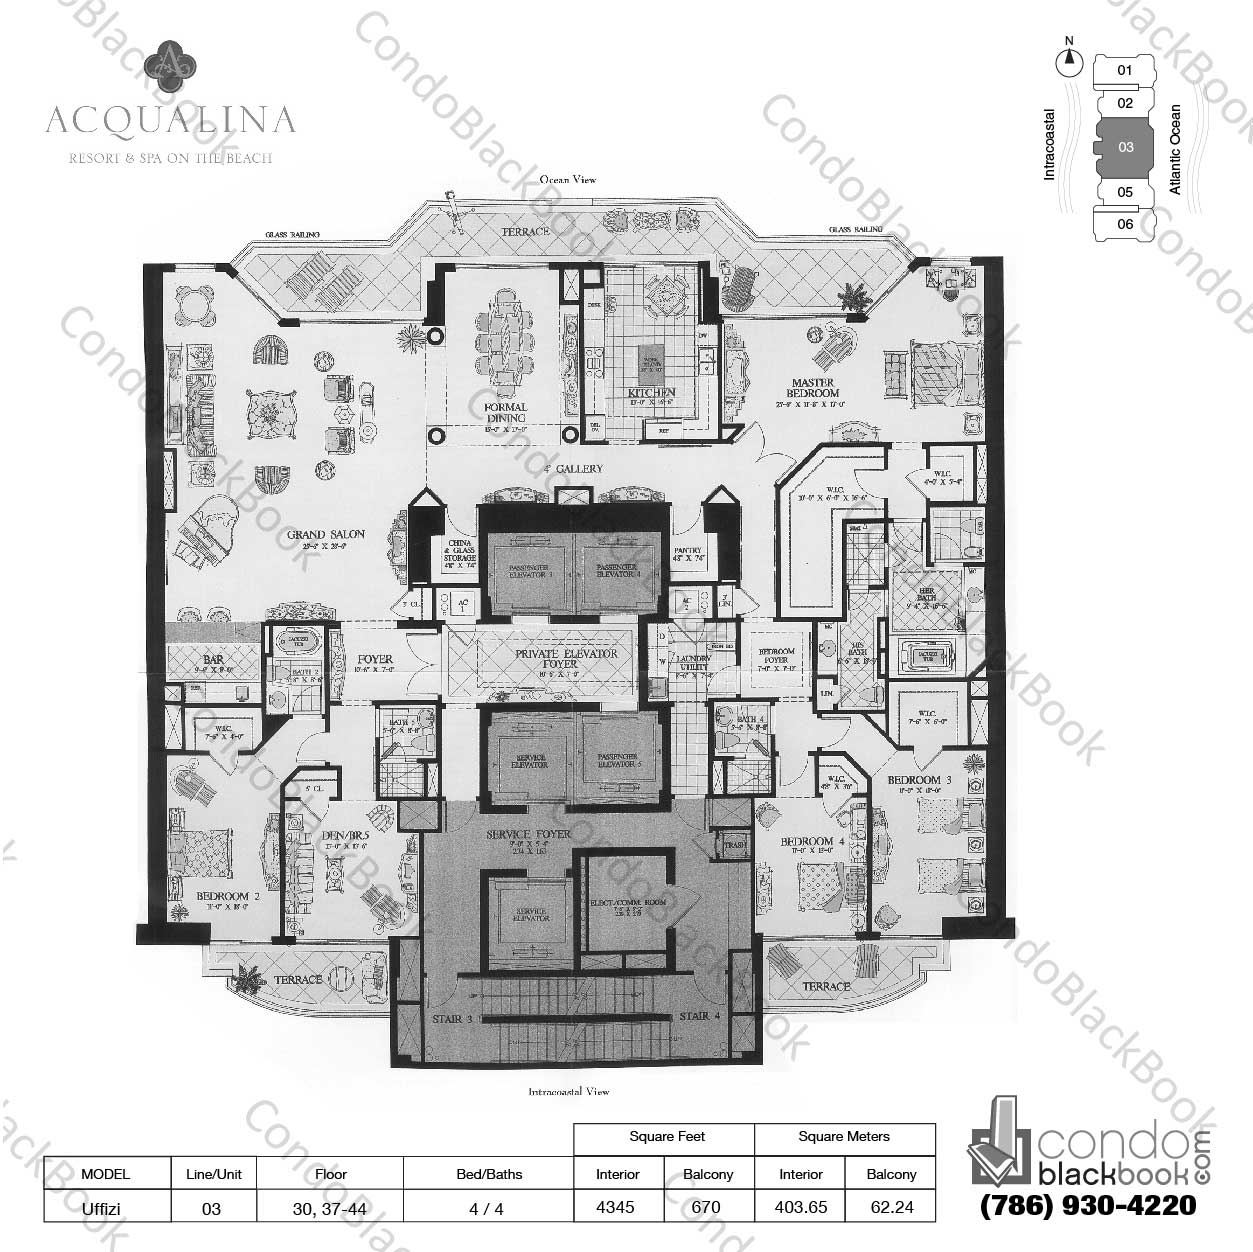 Floor plan for Acqualina Sunny Isles Beach, model Uffizi, line 03, 4 / 4 bedrooms, 4345 sq ft